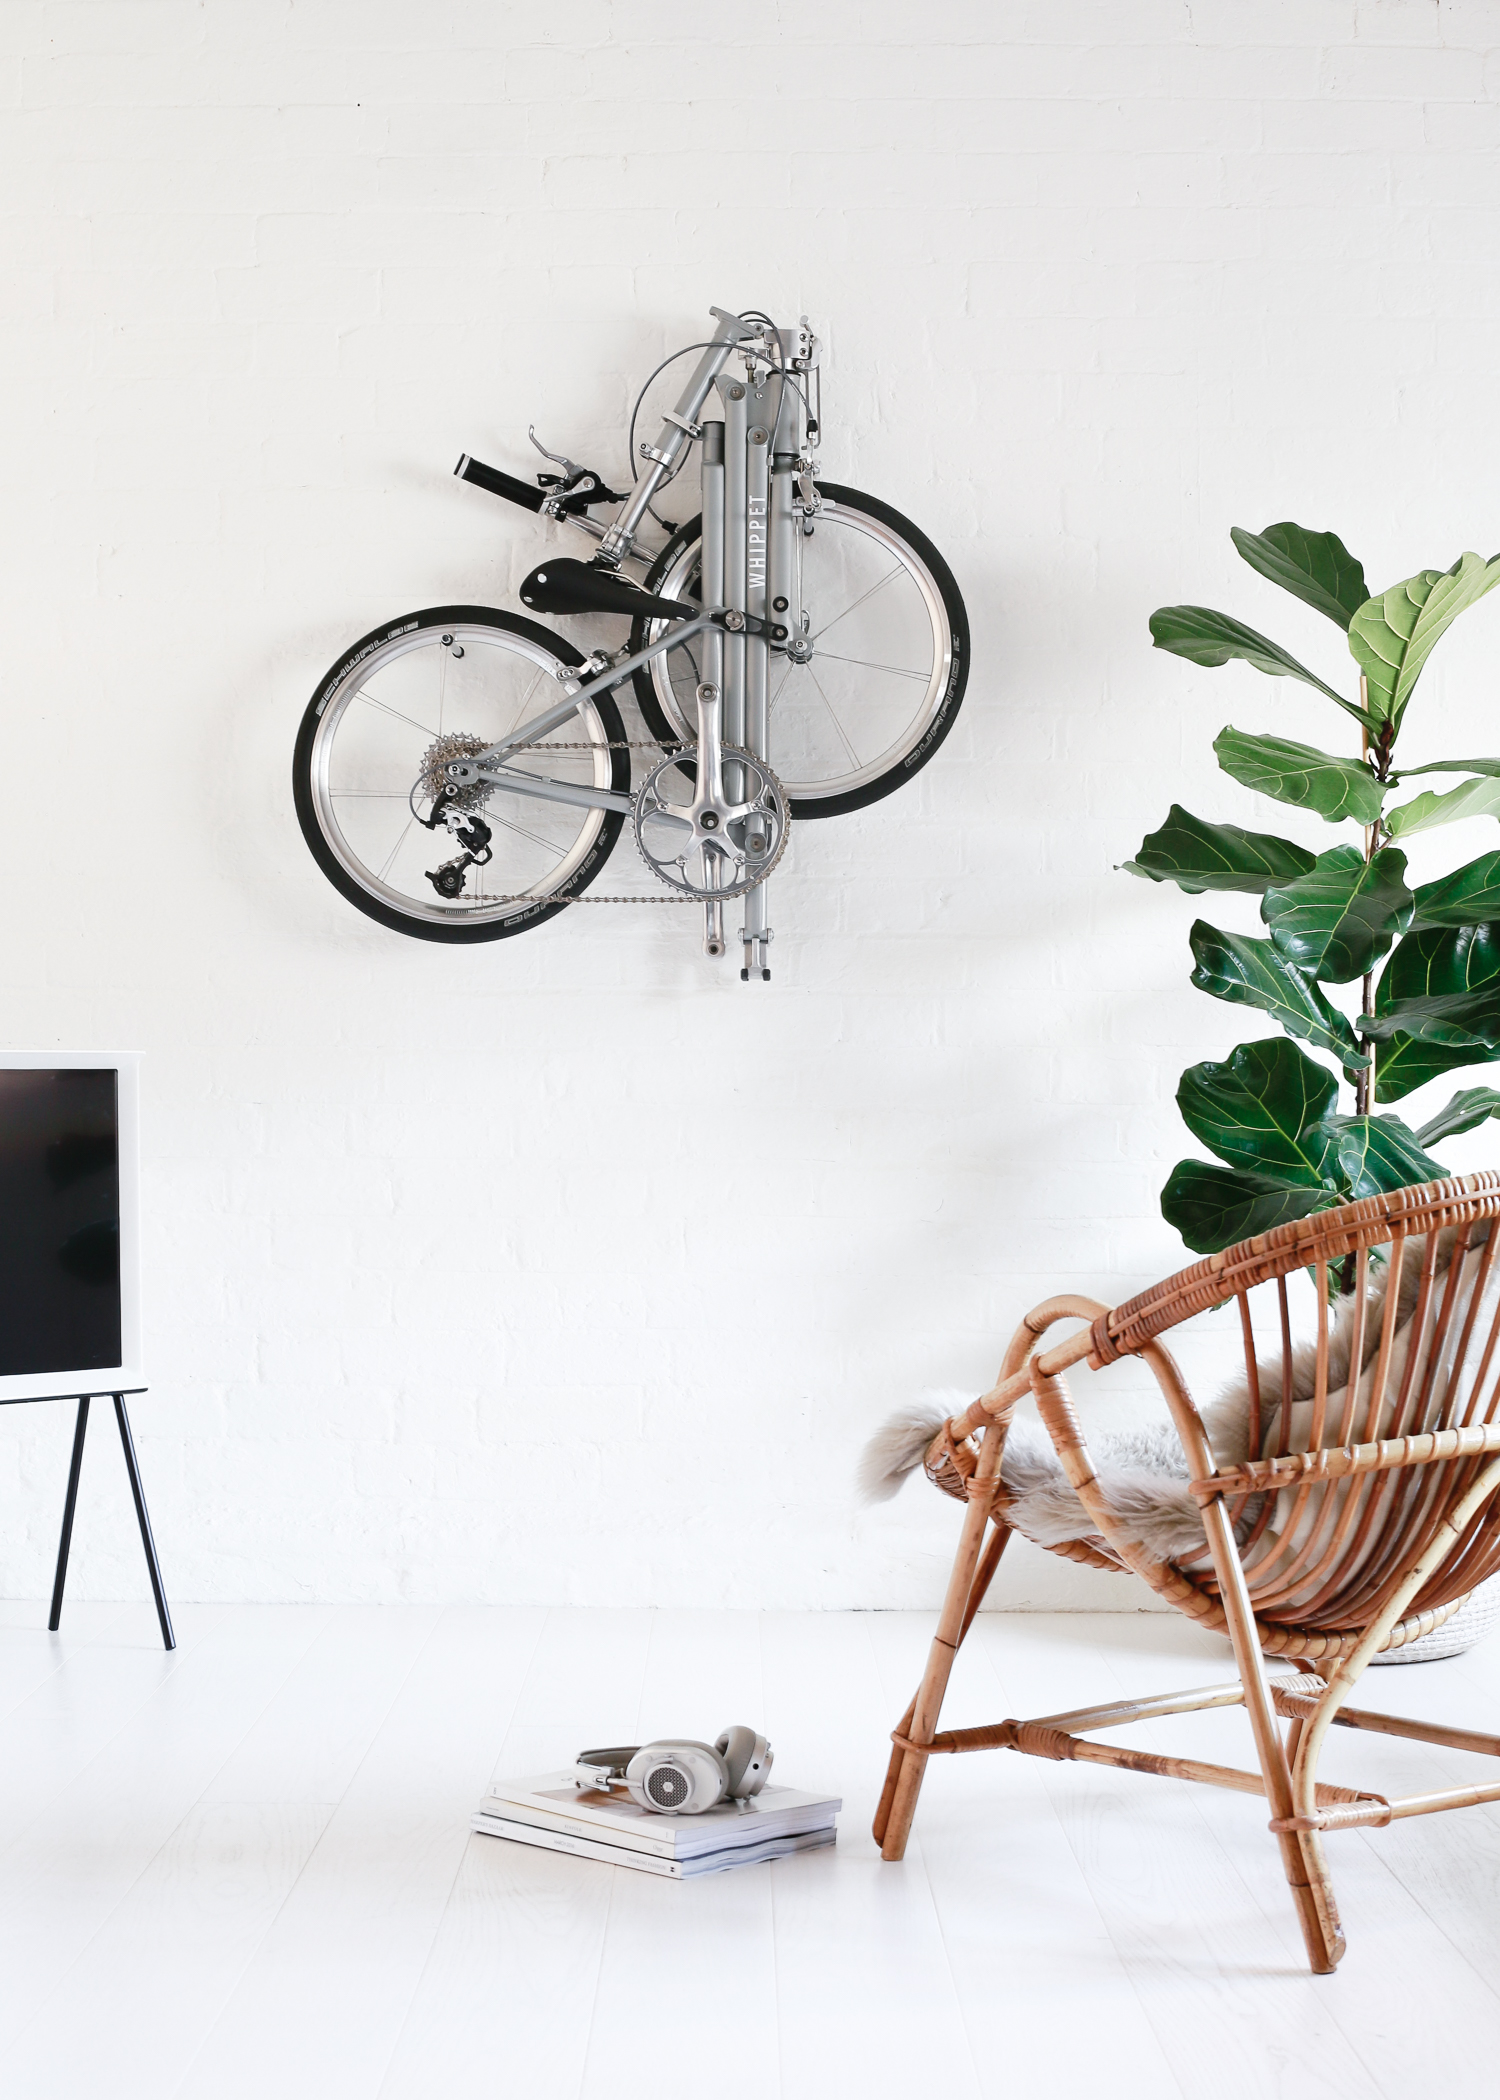 Whippet Bicycle - a new folding bicycle wall mounted